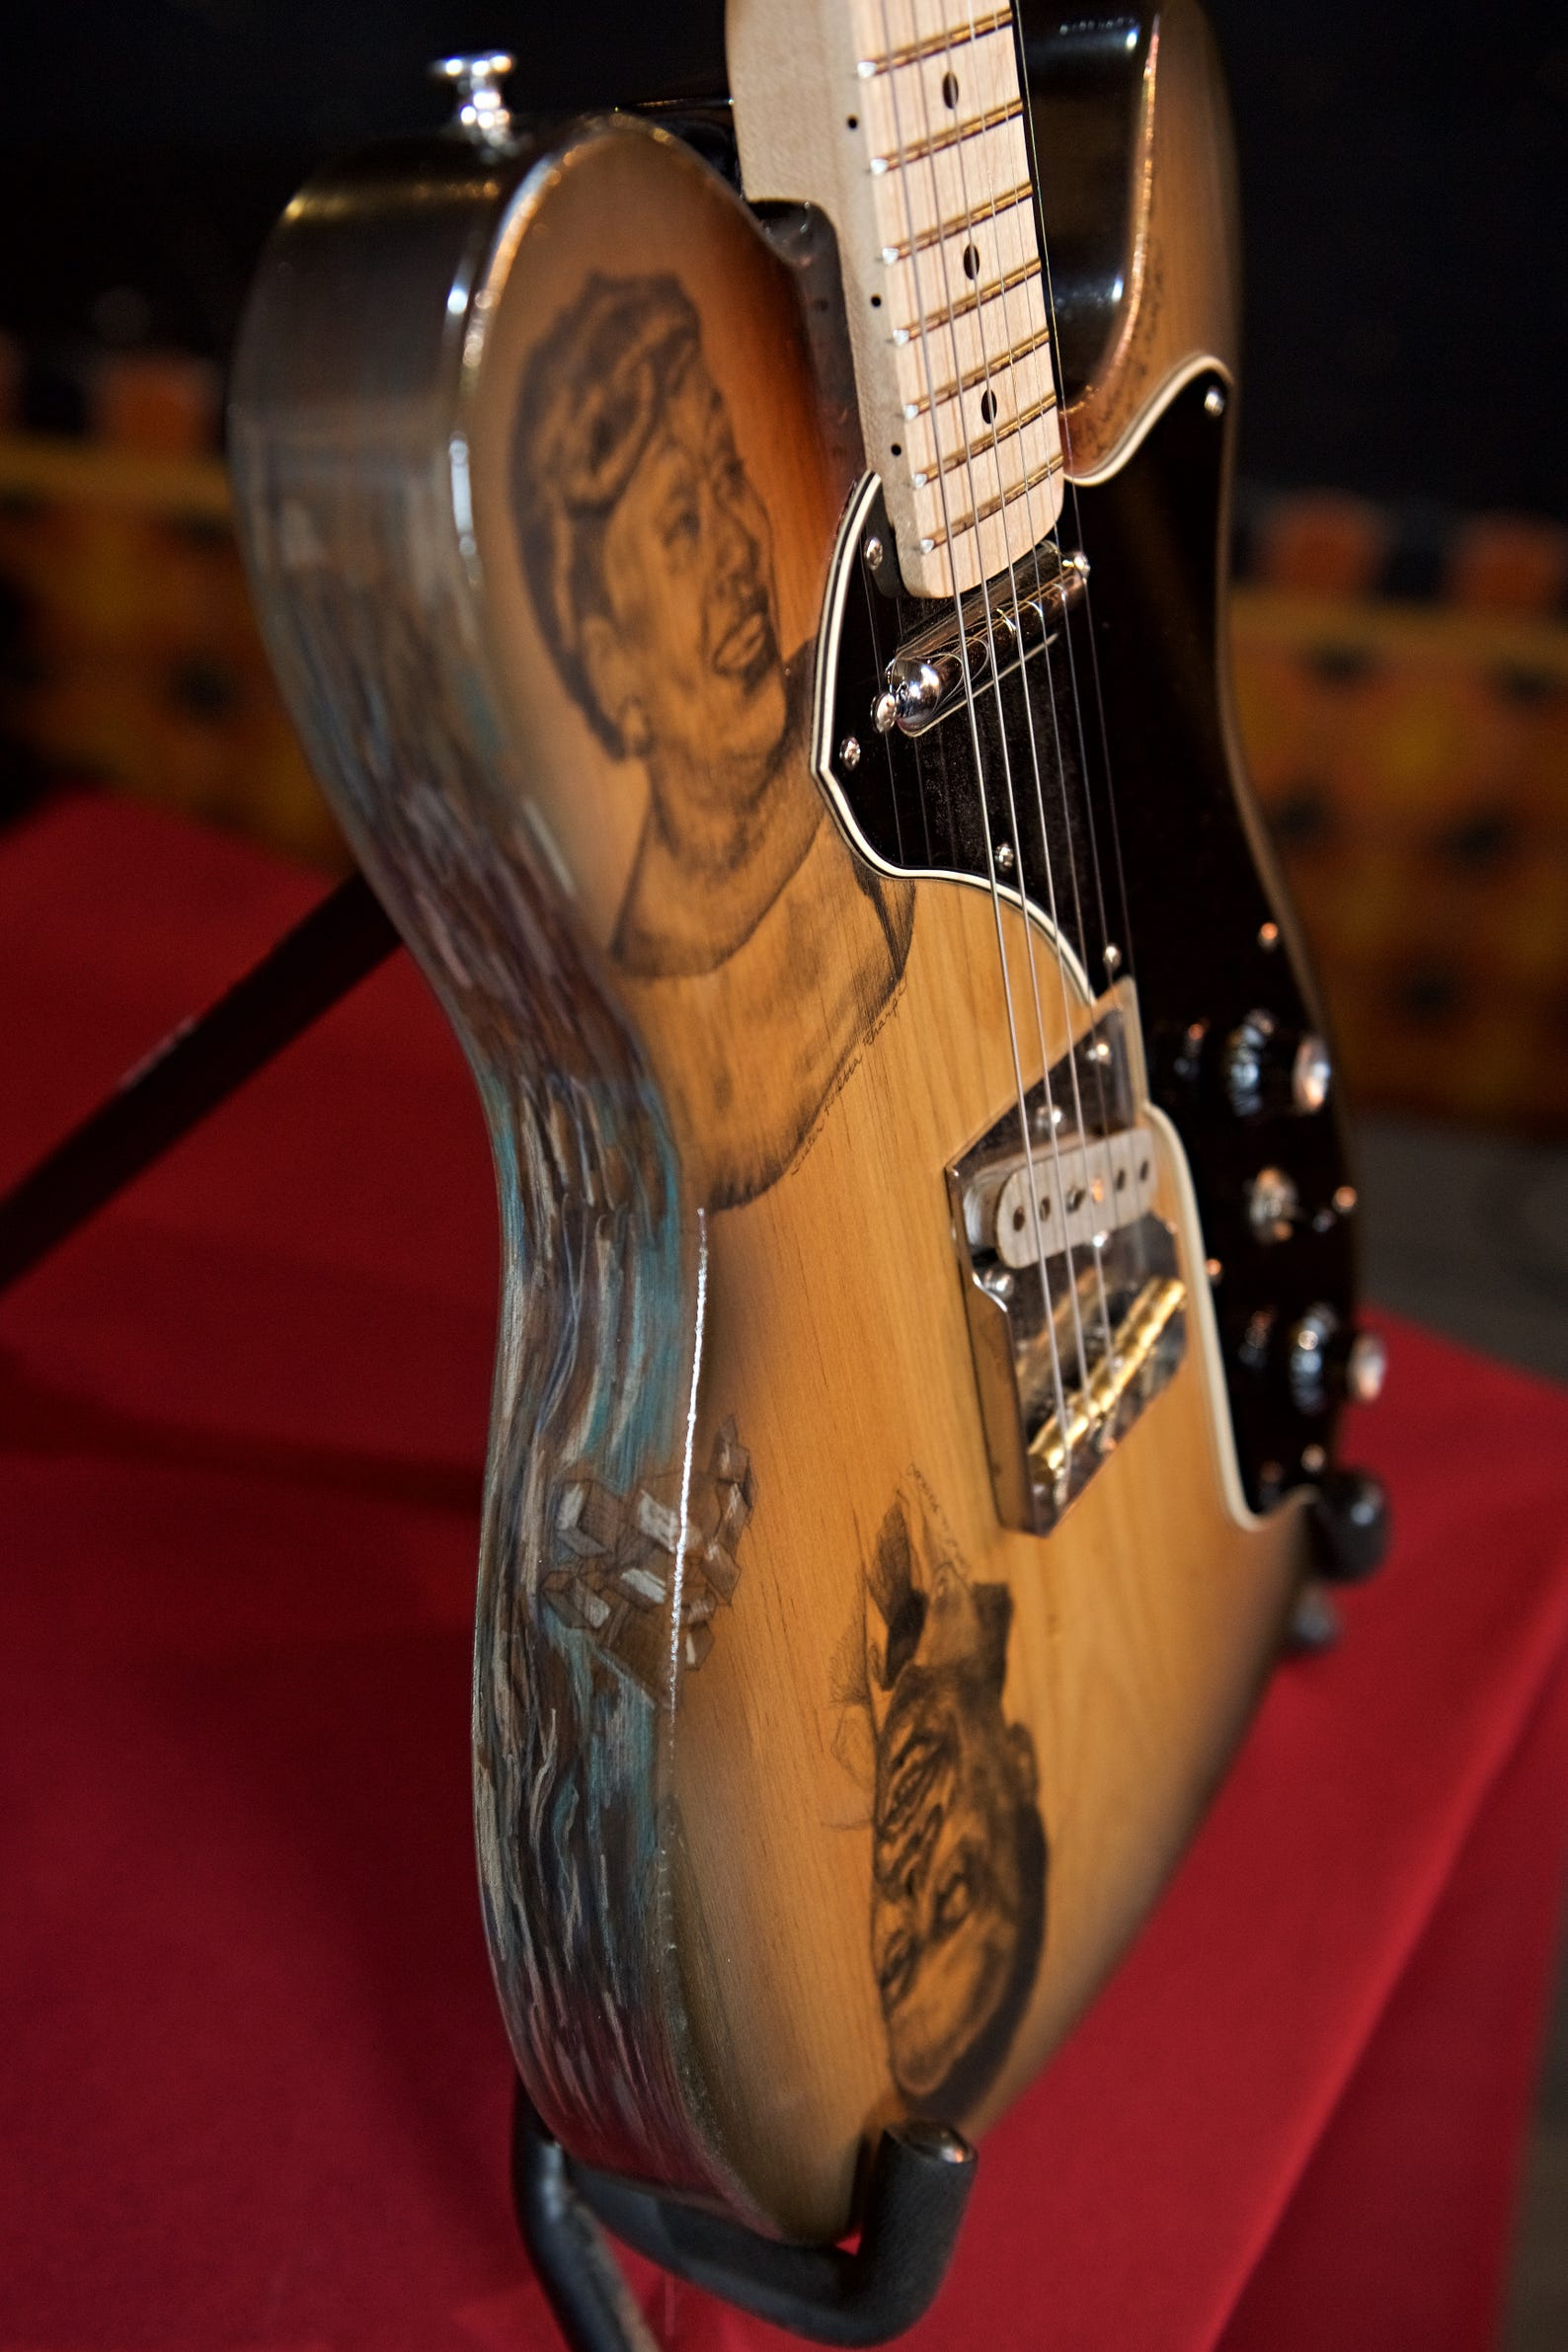 Gabriel Currie recently donated this handmade guitar to WDET that is being raffled to make money for the public radio station. It was built using wood from northern Michigan trees that were submerged in a lake for 100 years. Sabrina Nelson, a Detroit multimedia artist, created custom artwork featuring famous guitarists that adorns the front and back of the instrument. It is on display at the Detroit Historical Museum until National Guitar Day, Jimi Hendrix's birthday, on Nov. 27.